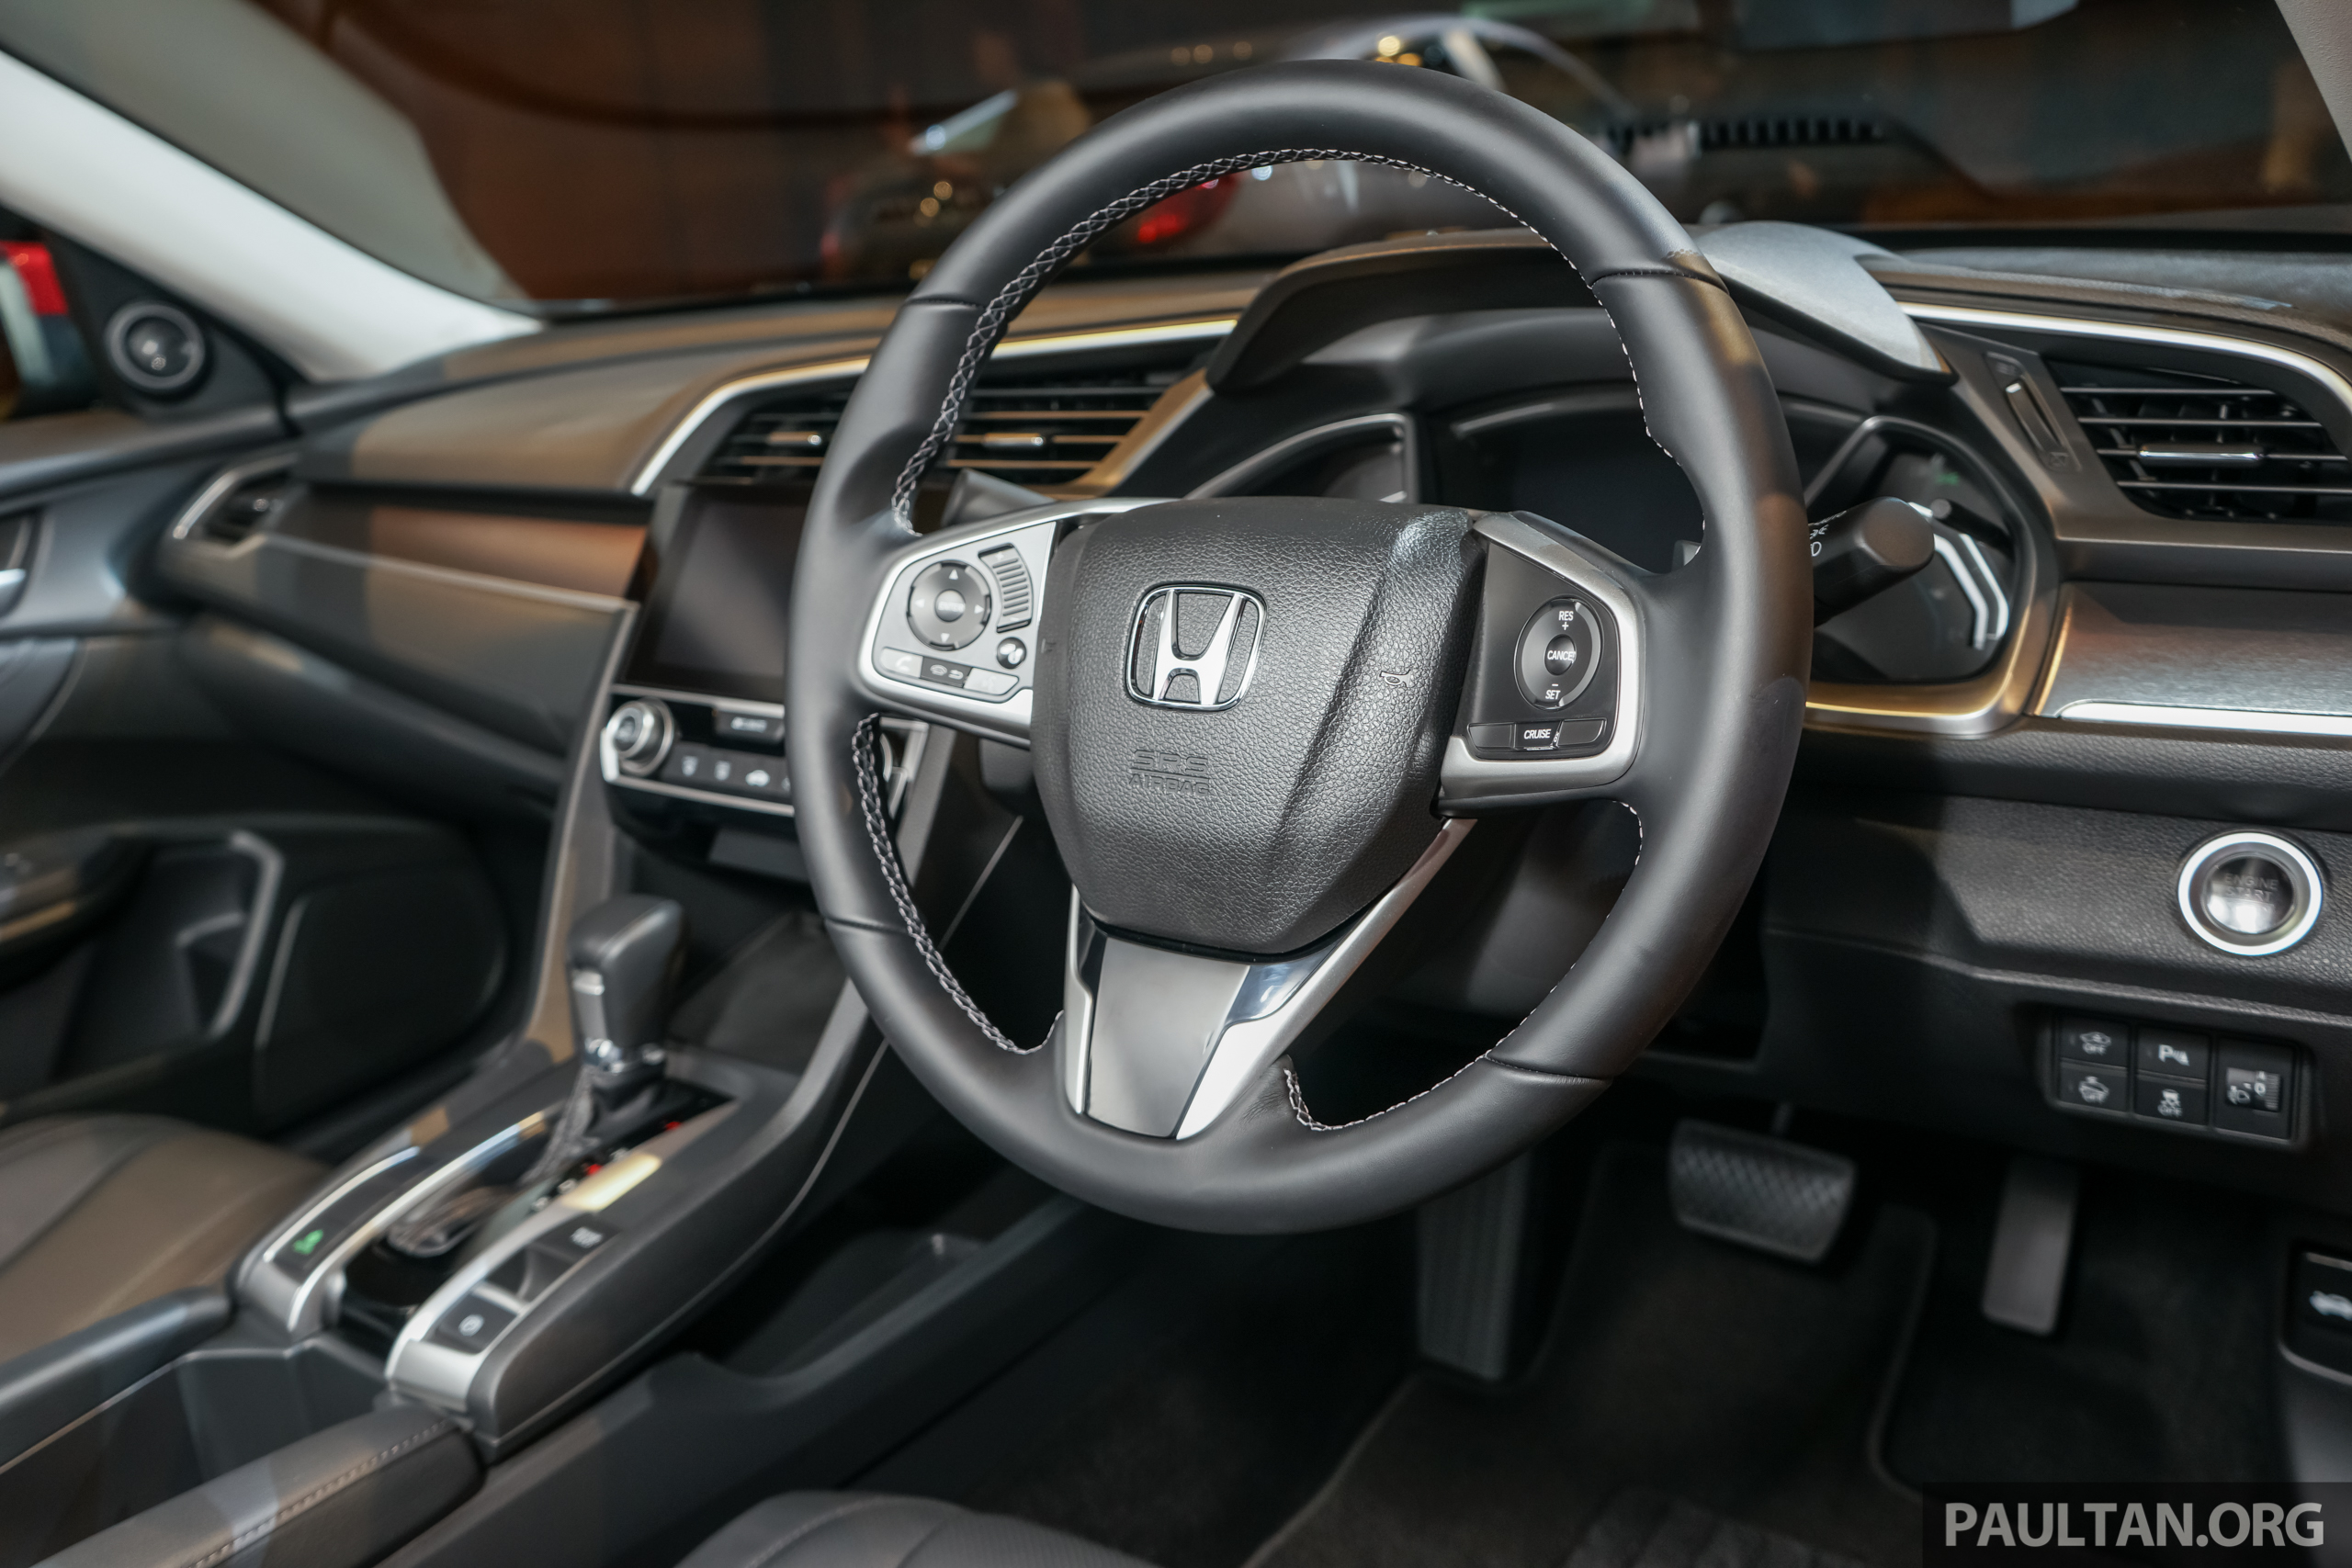 2016 Honda Civic FC 1.8 S, 1.5 Turbo, 1.5 Turbo Premium – specs and equipment in a nutshell ...